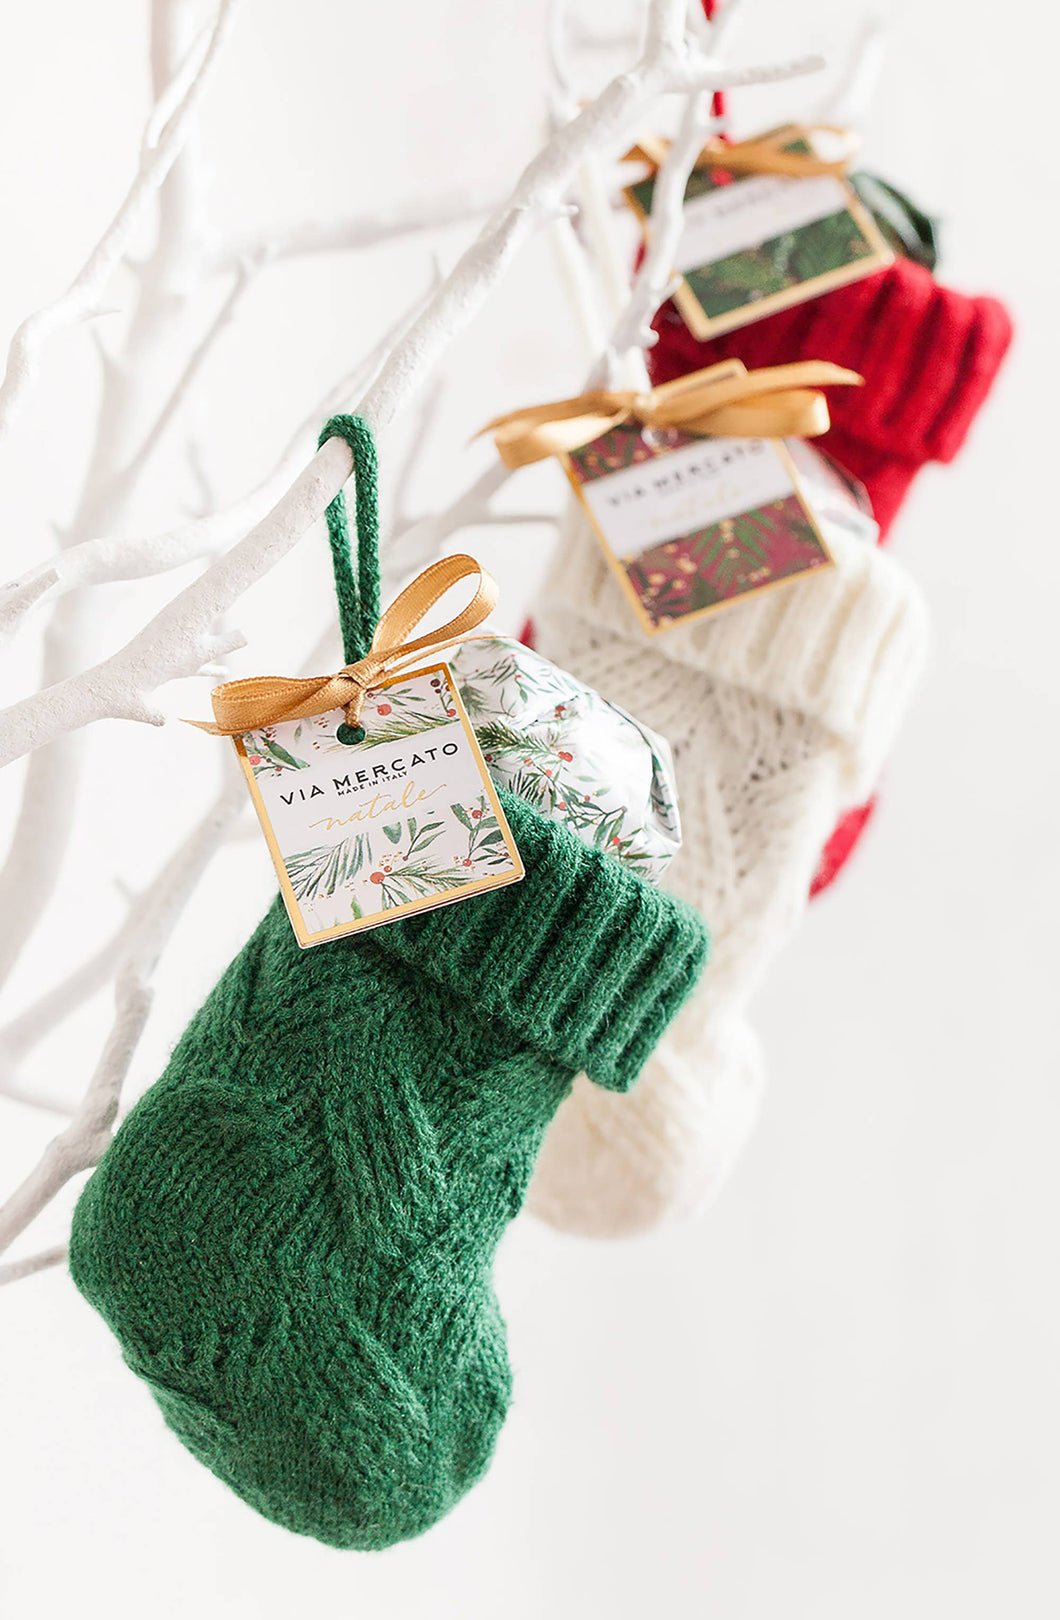 European Soaps - Mini Stocking Gift Set (100G) - Mistletoe